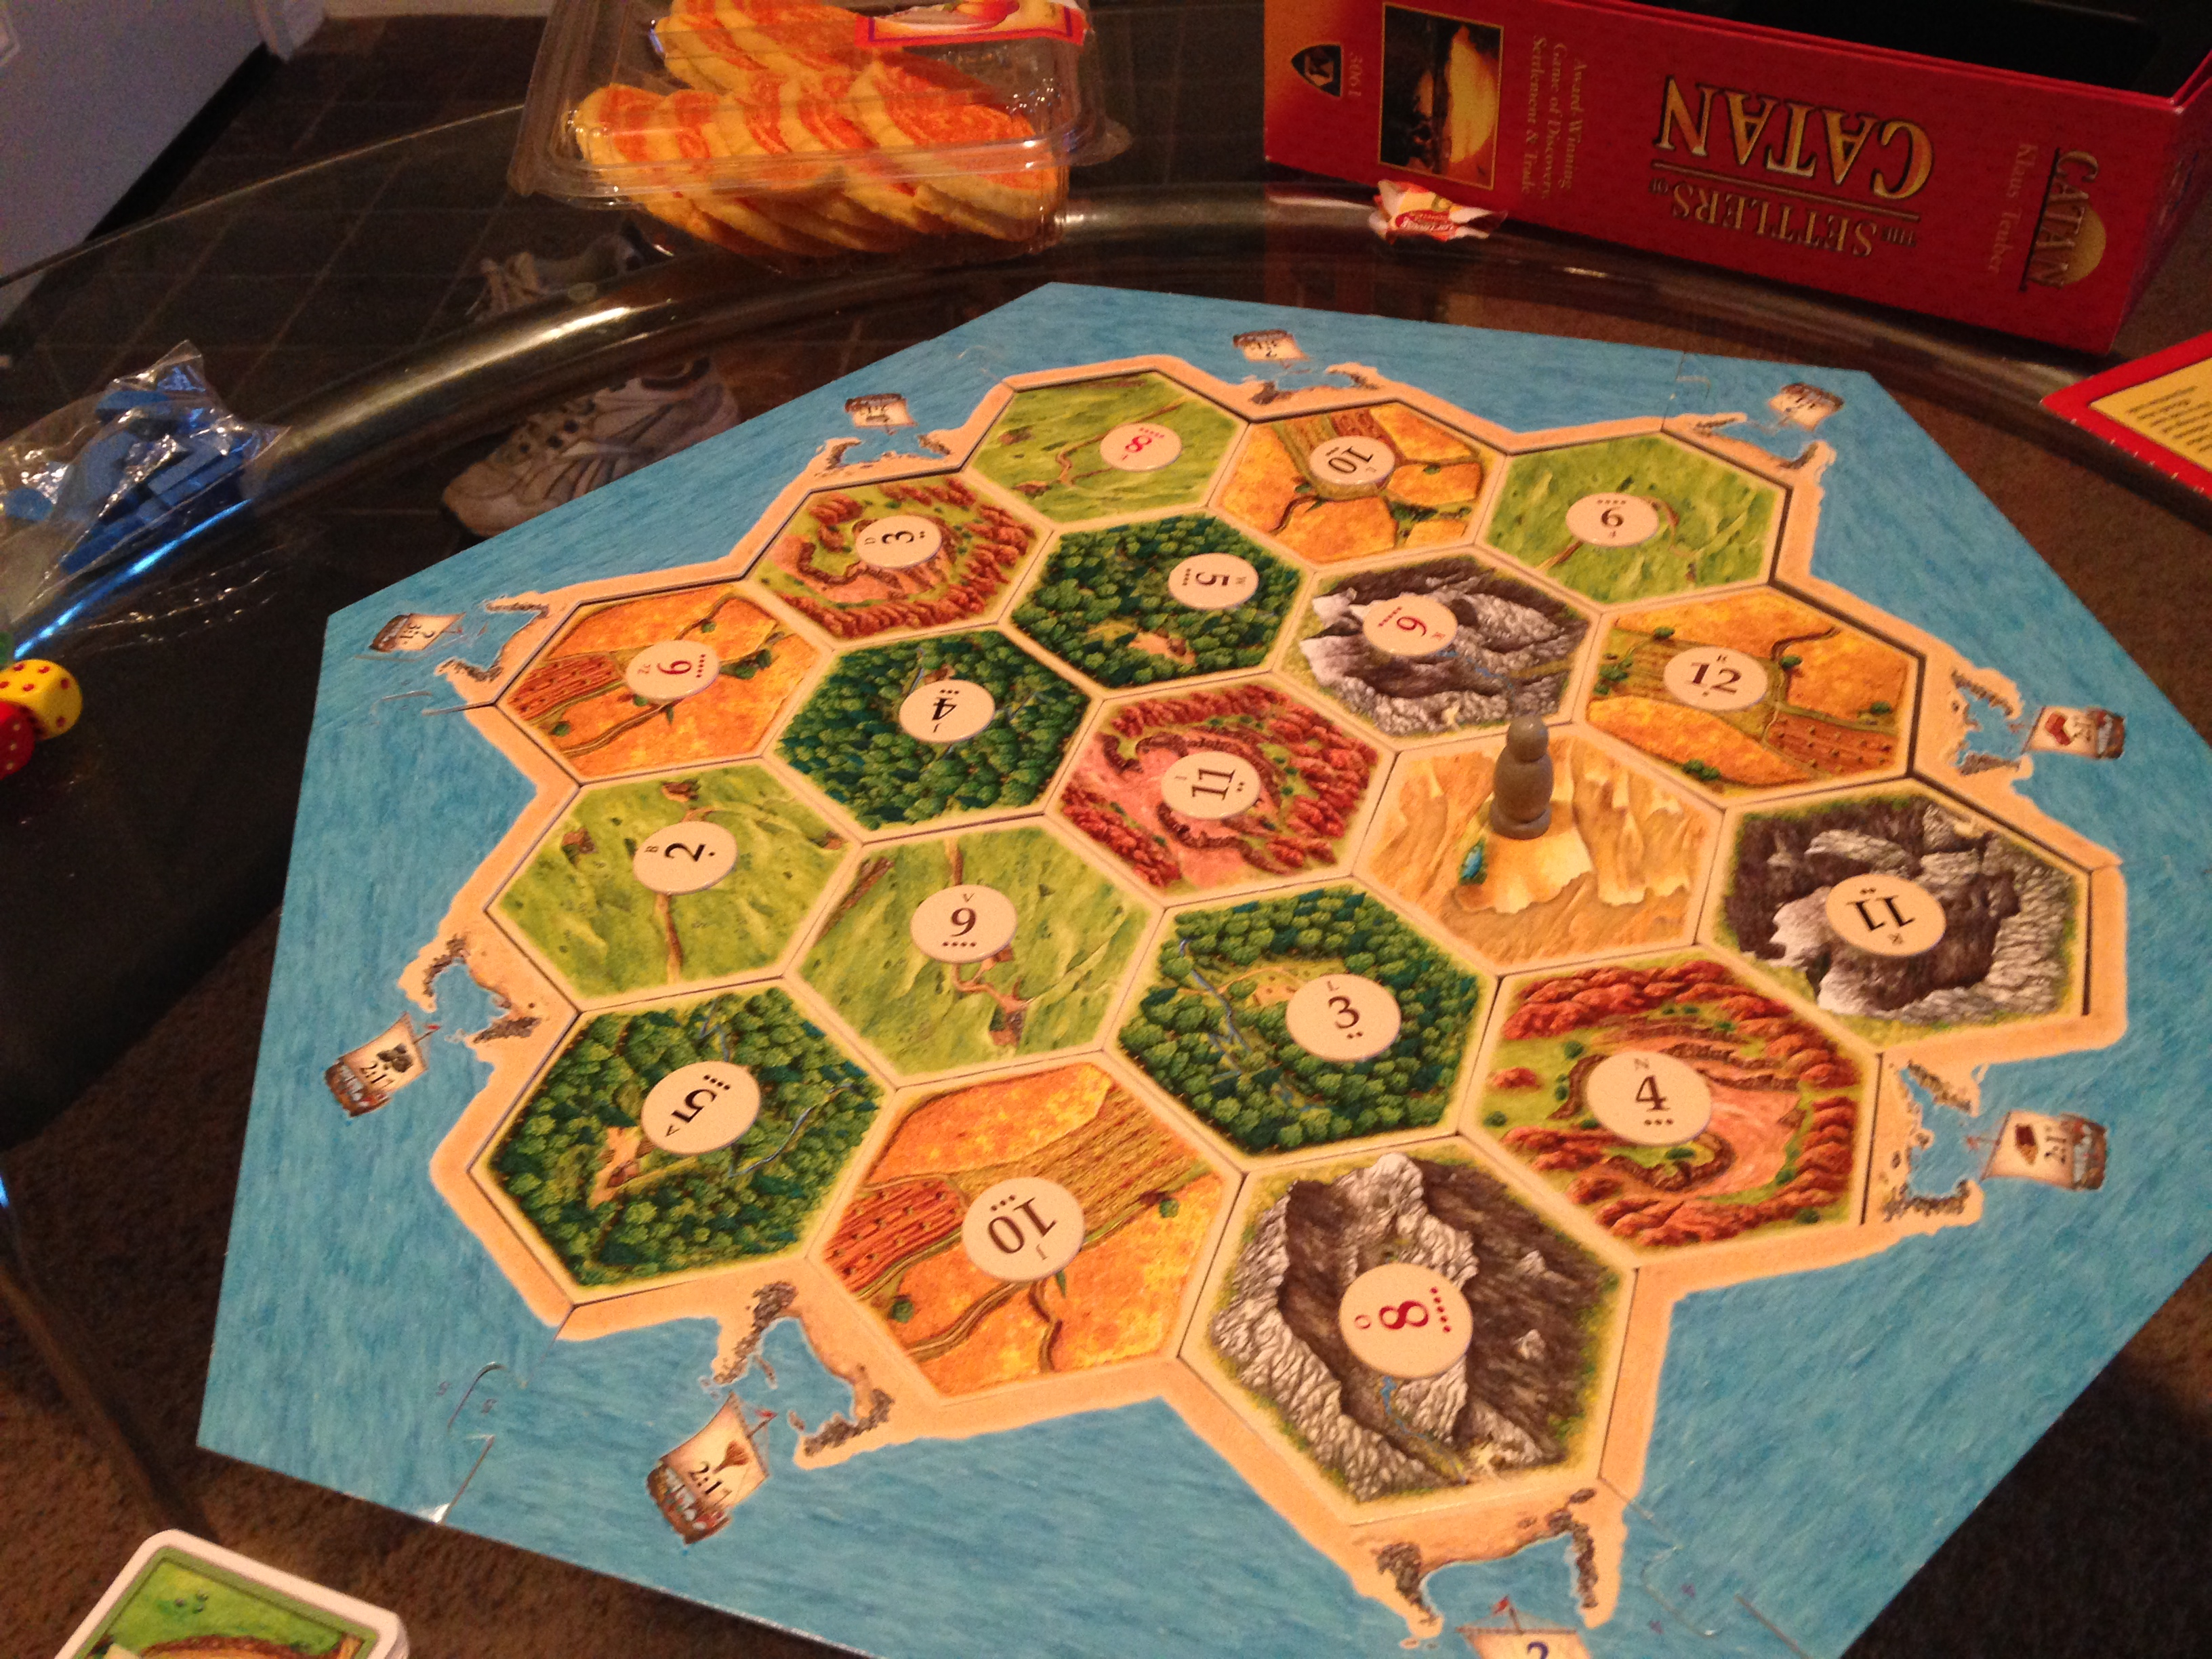 Best Board Games - Catan | Settlers of Catan - Play Fun ...